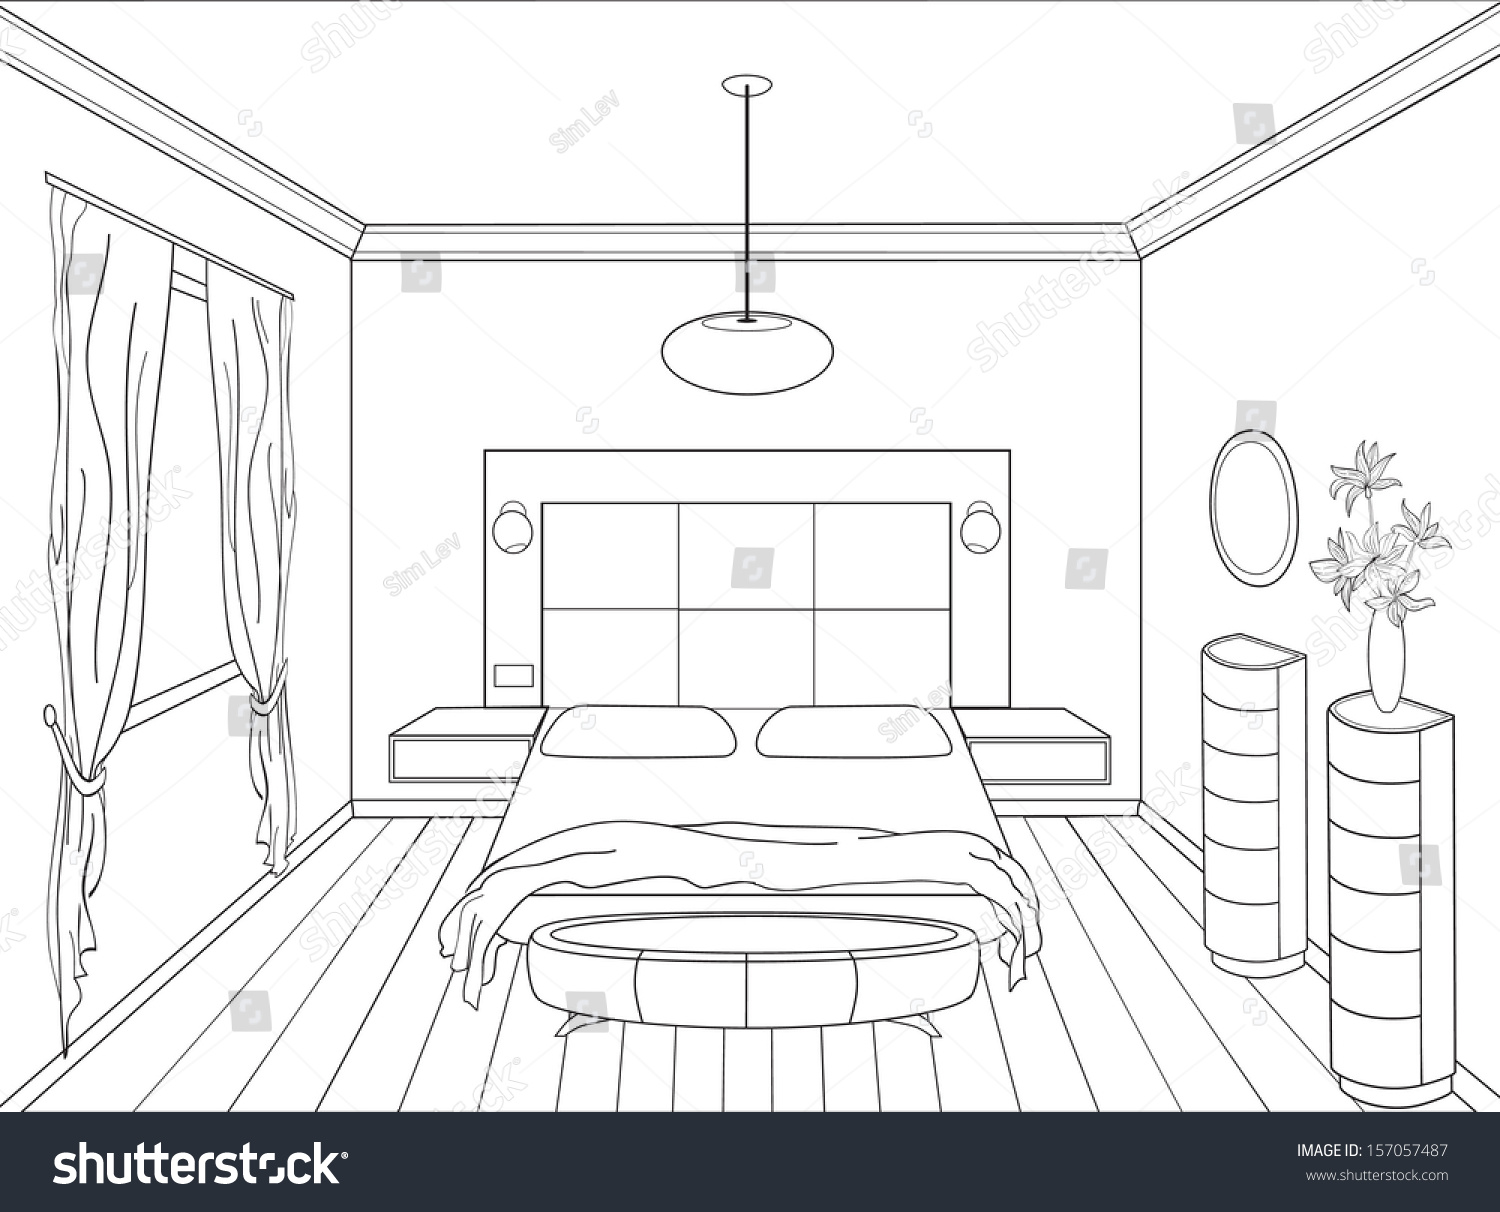 Interior Design Line Art Vector : Royalty free editable vector illustration of an